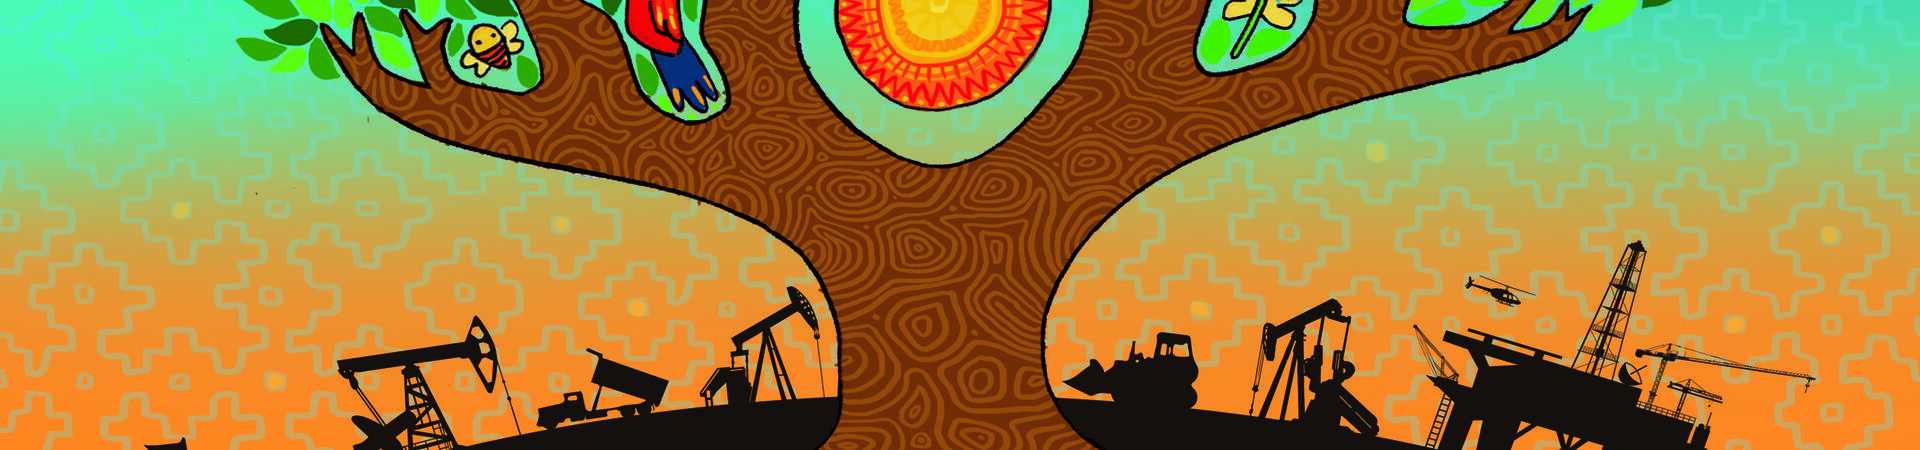 Banner - Global Alliance for the Rights of Nature